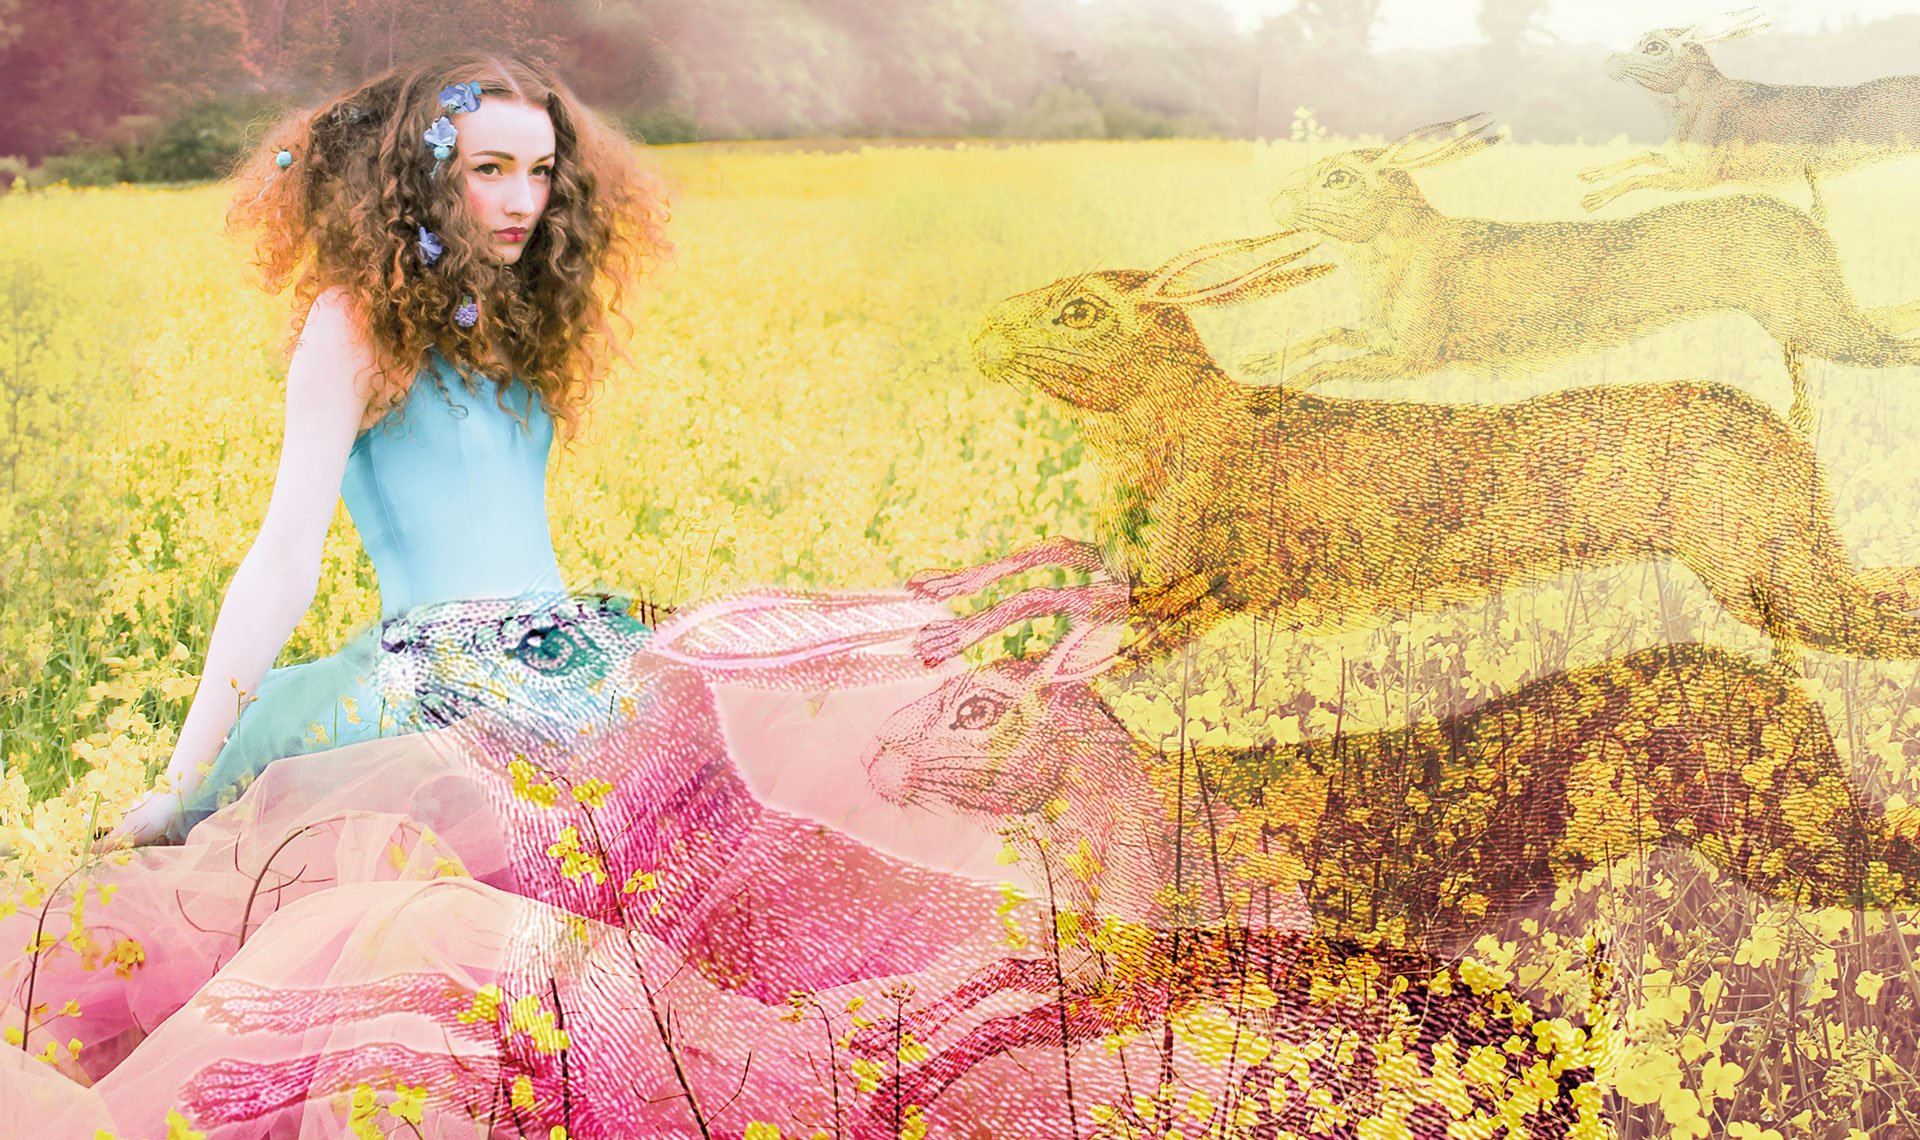 young woman in a turquoise sits in a field of yellow flowers with hares superimposed over the image